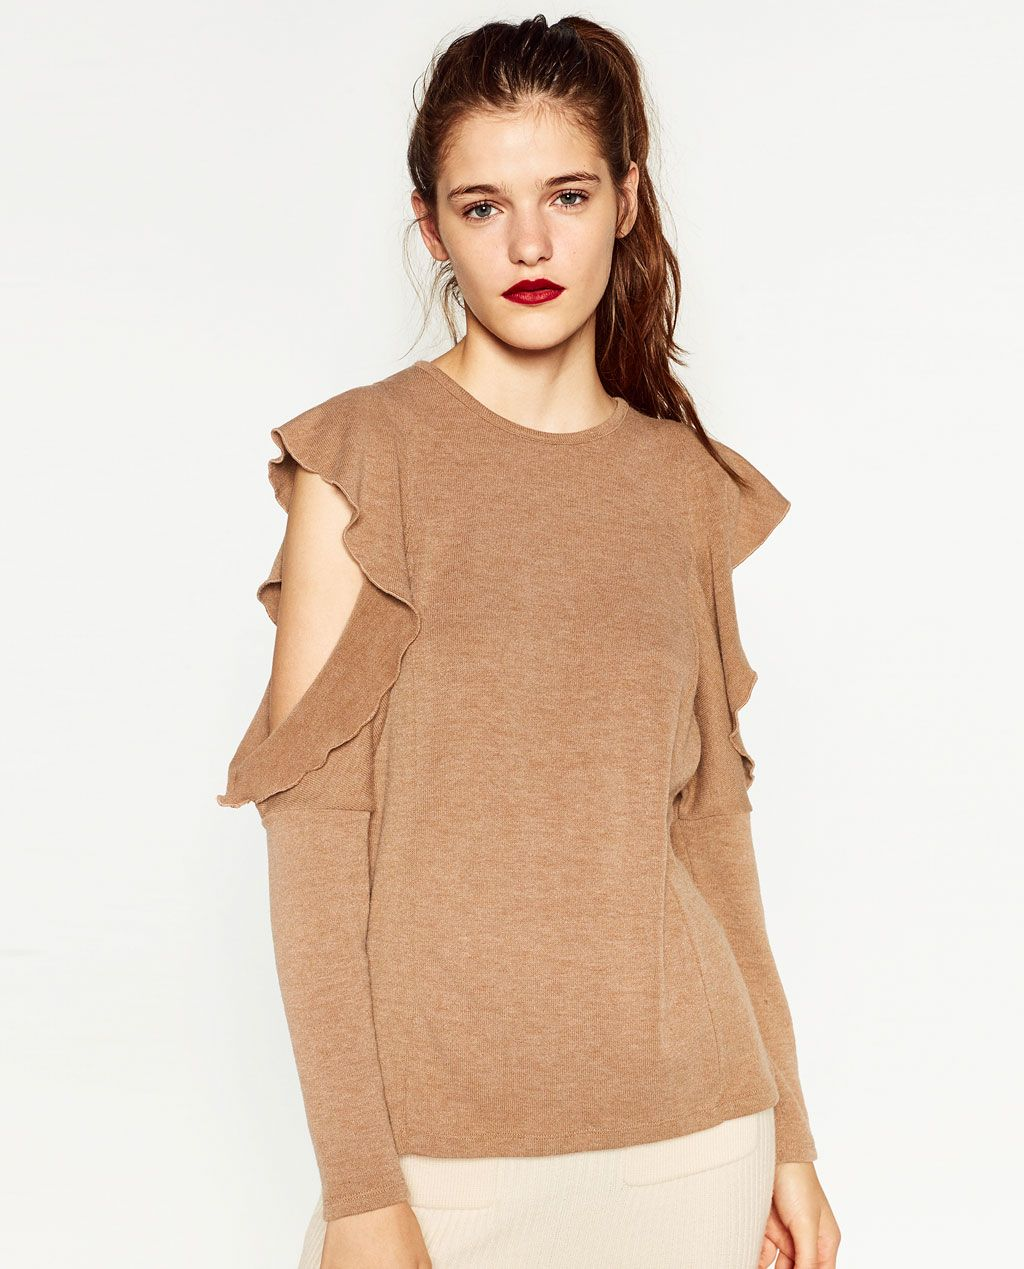 78e8c443d3eb CUT-OUT T-SHIRT-NEW IN-WOMAN | ZARA United States | TOPS | Cut ...